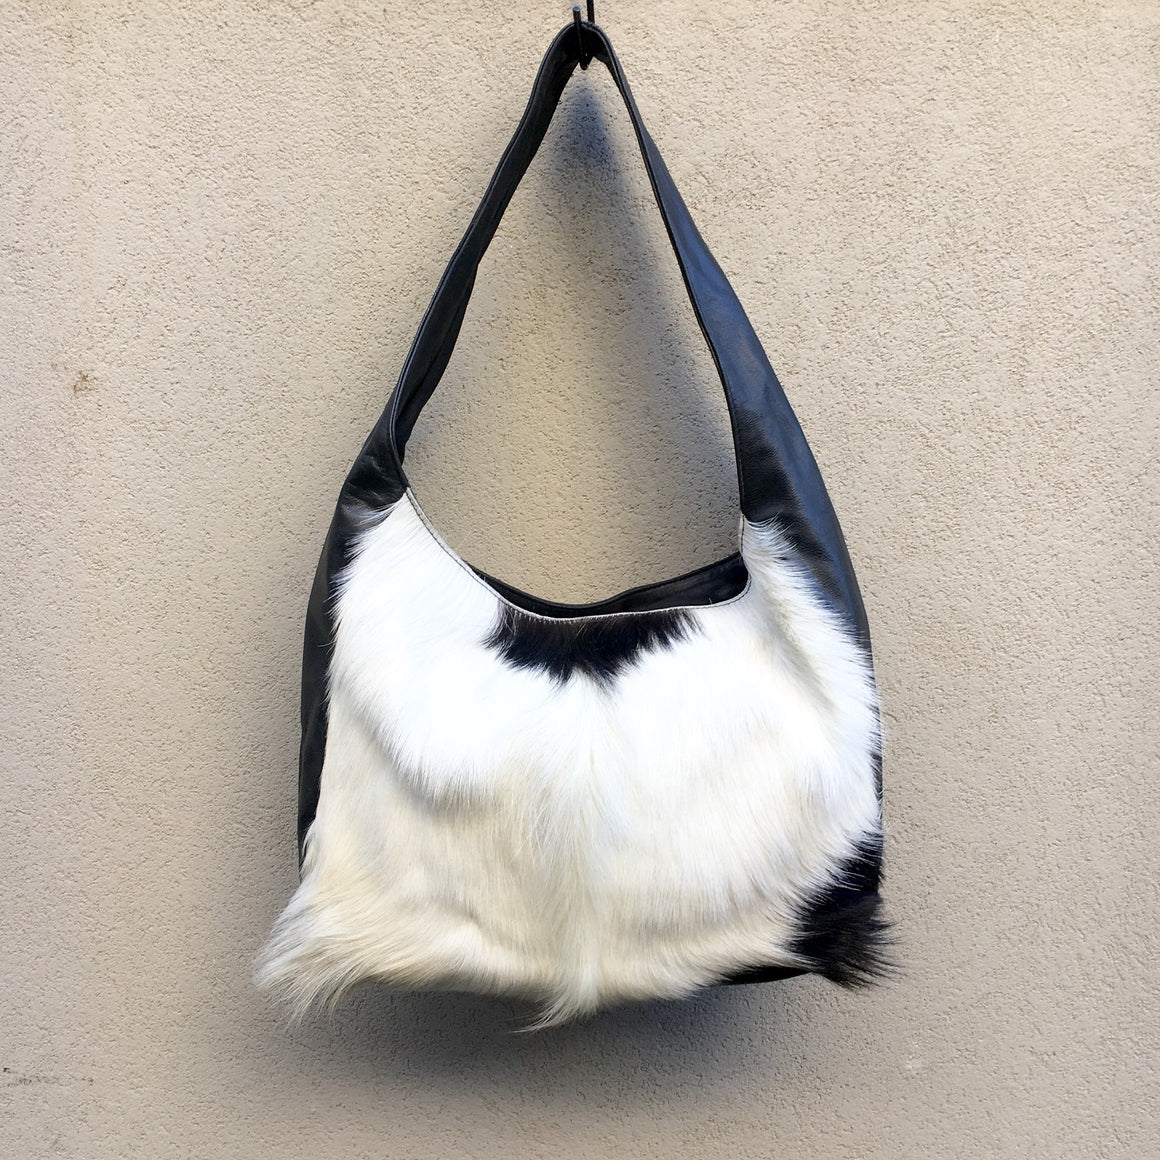 Arizona Leather and Lambs Fur Crossbody Slouch Bag, Bag - KITTY KAT,